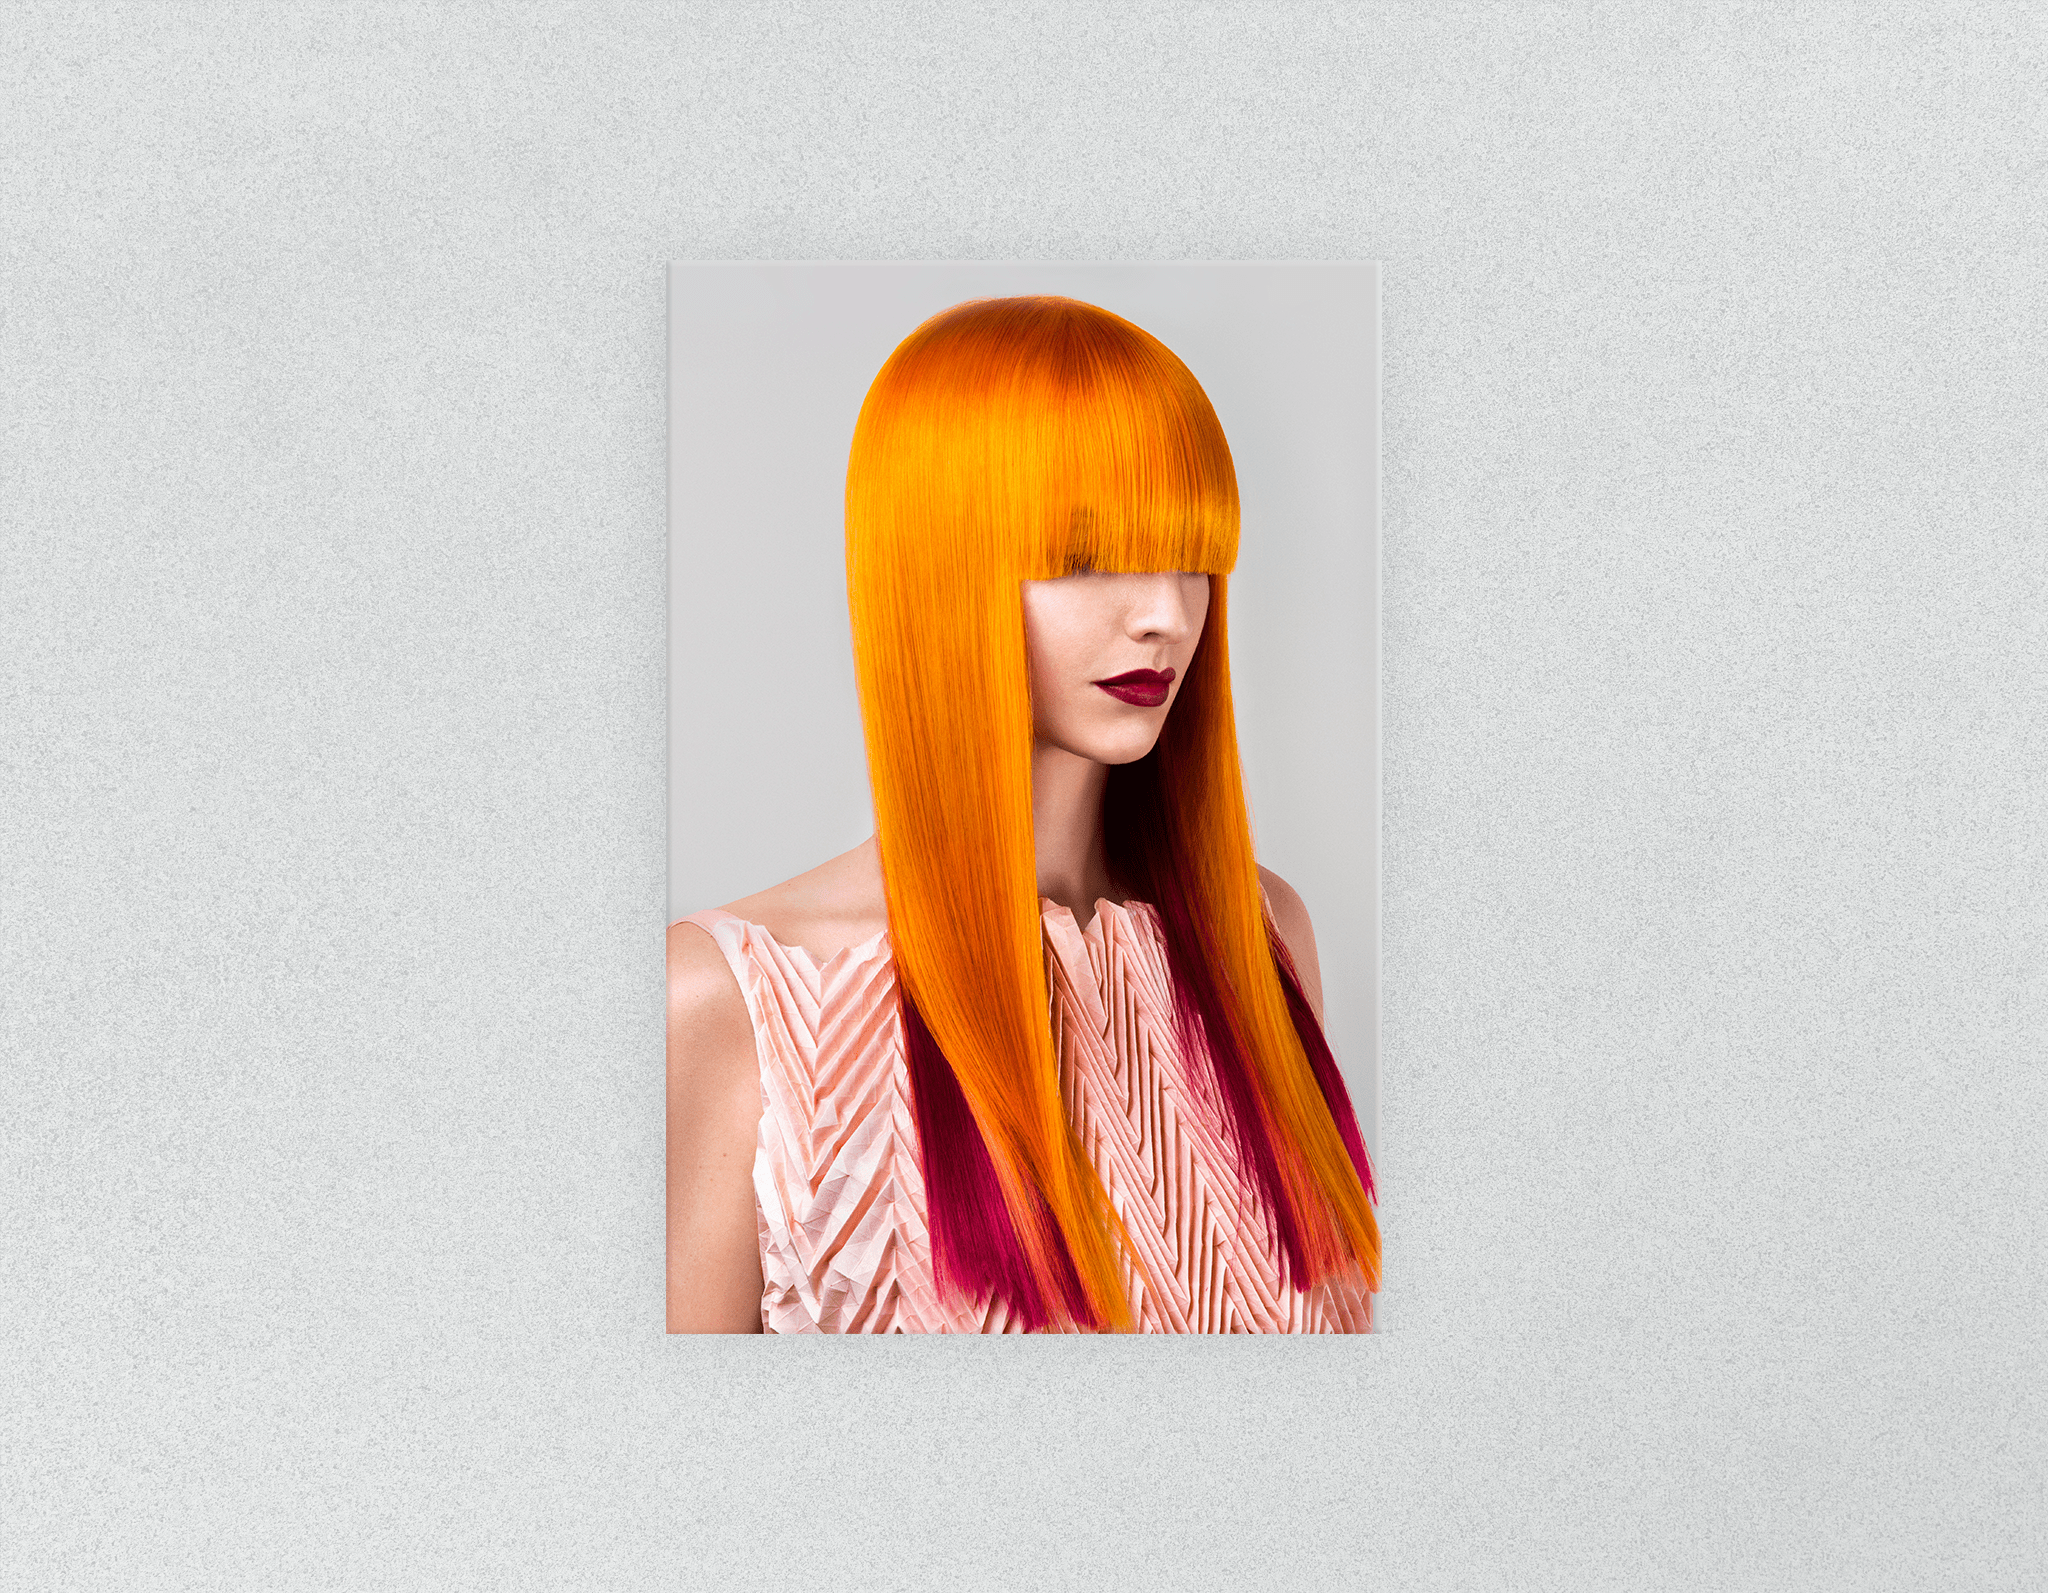 Plastic Salon Posters: Woman Front 2 with Long Orange Colored Hair